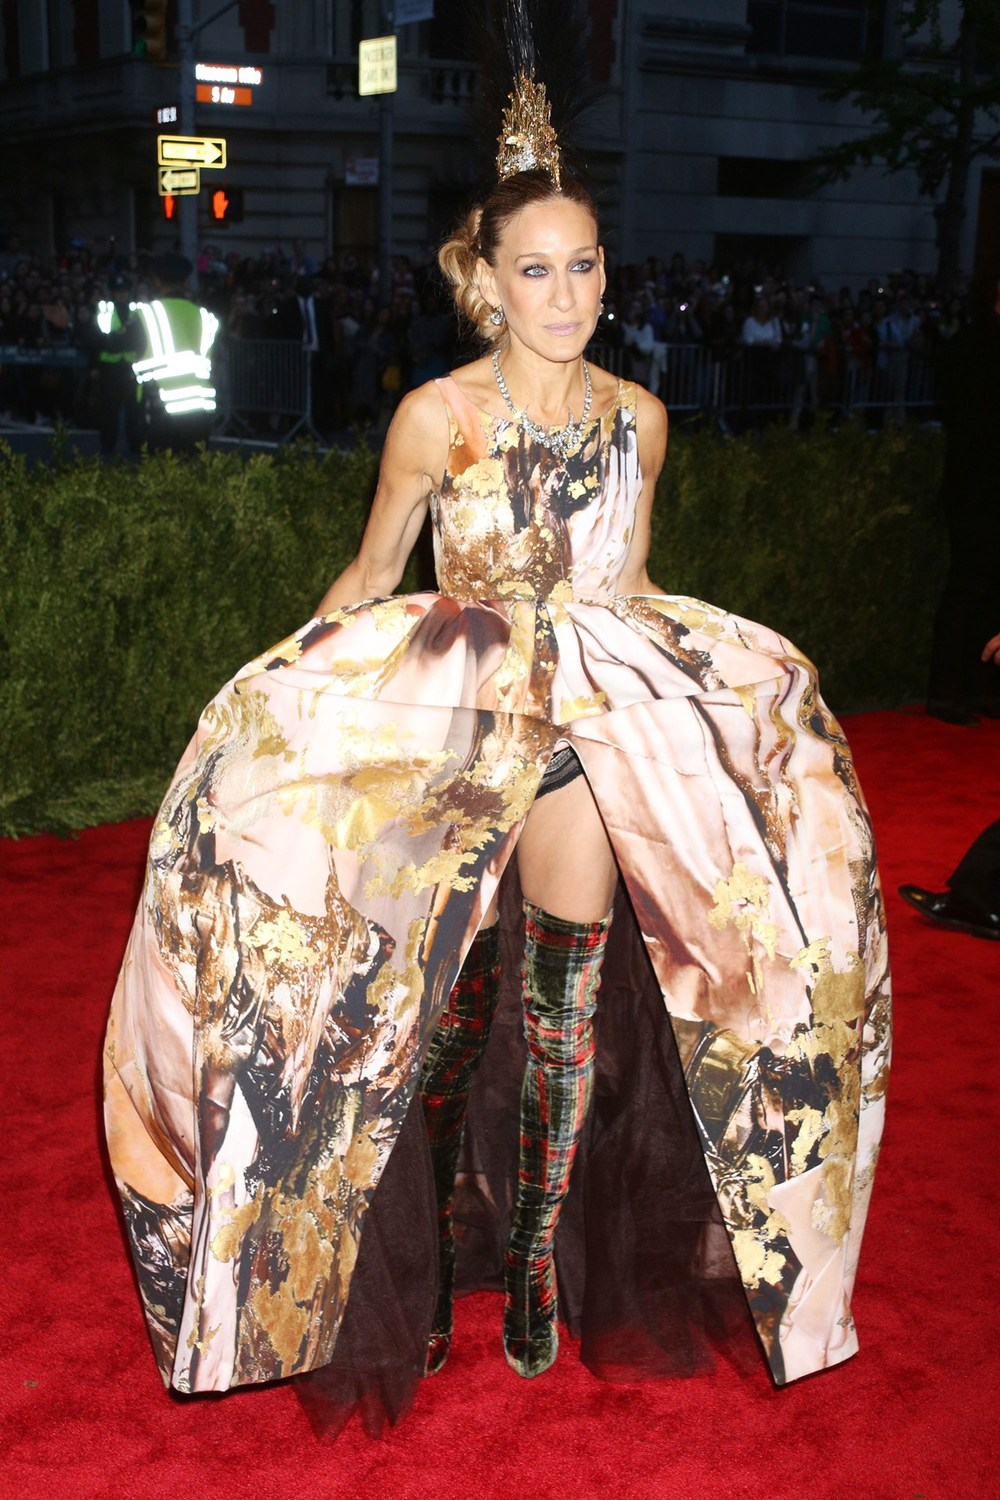 sjp-boots-vogue-7may13-rex_b_1280x1920.jpg